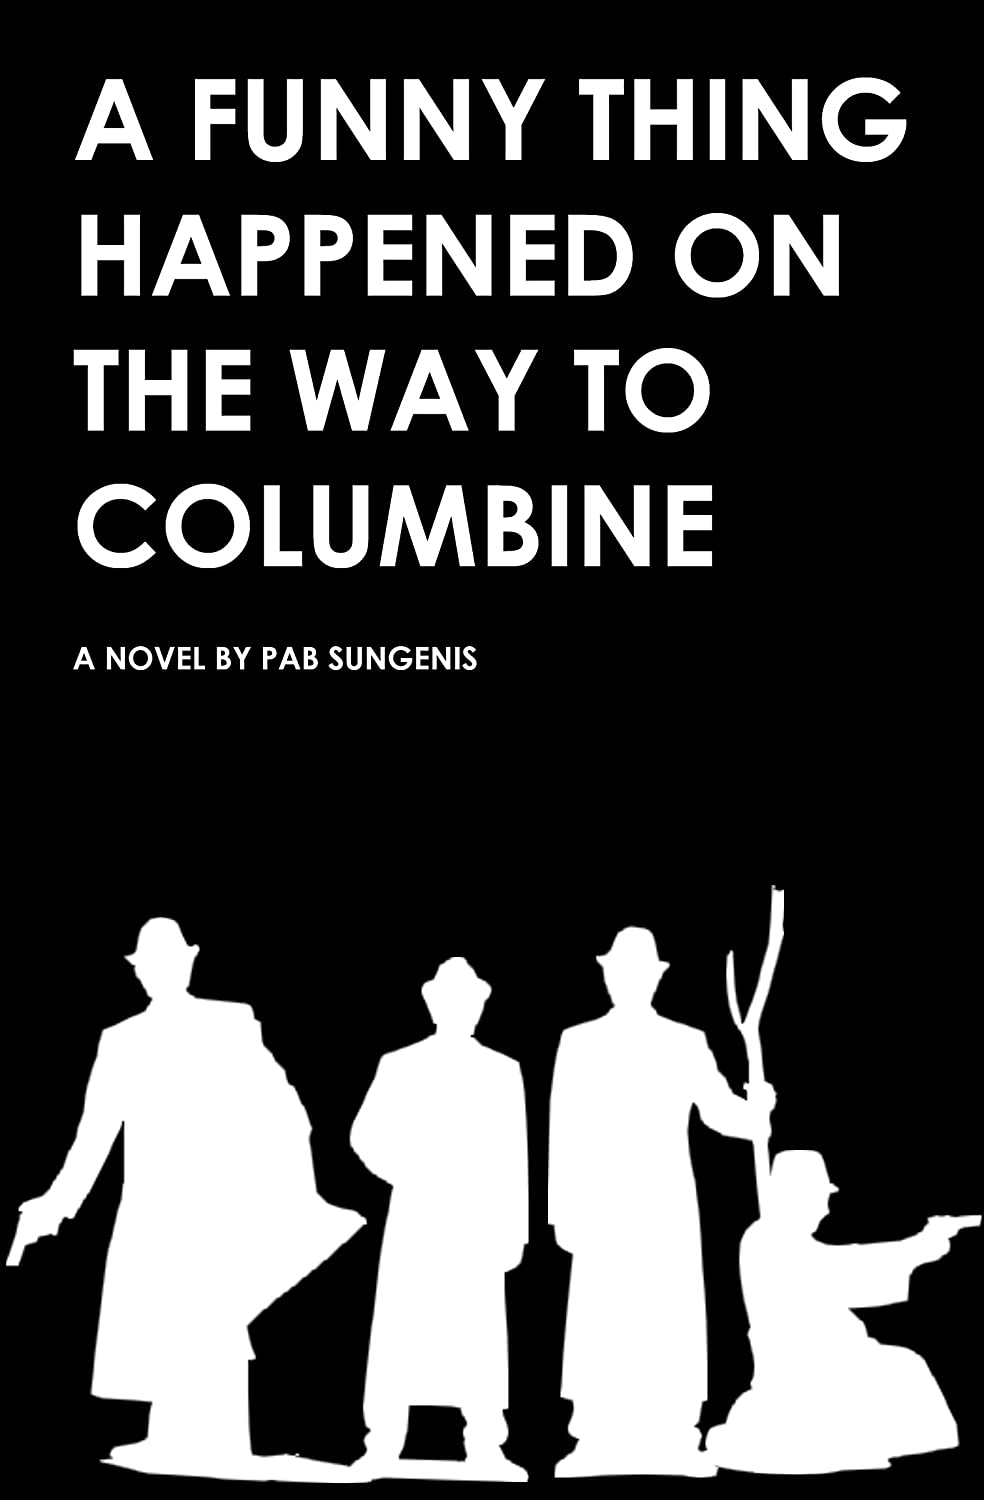 A Funny Thing Happened on the Way to Columbine